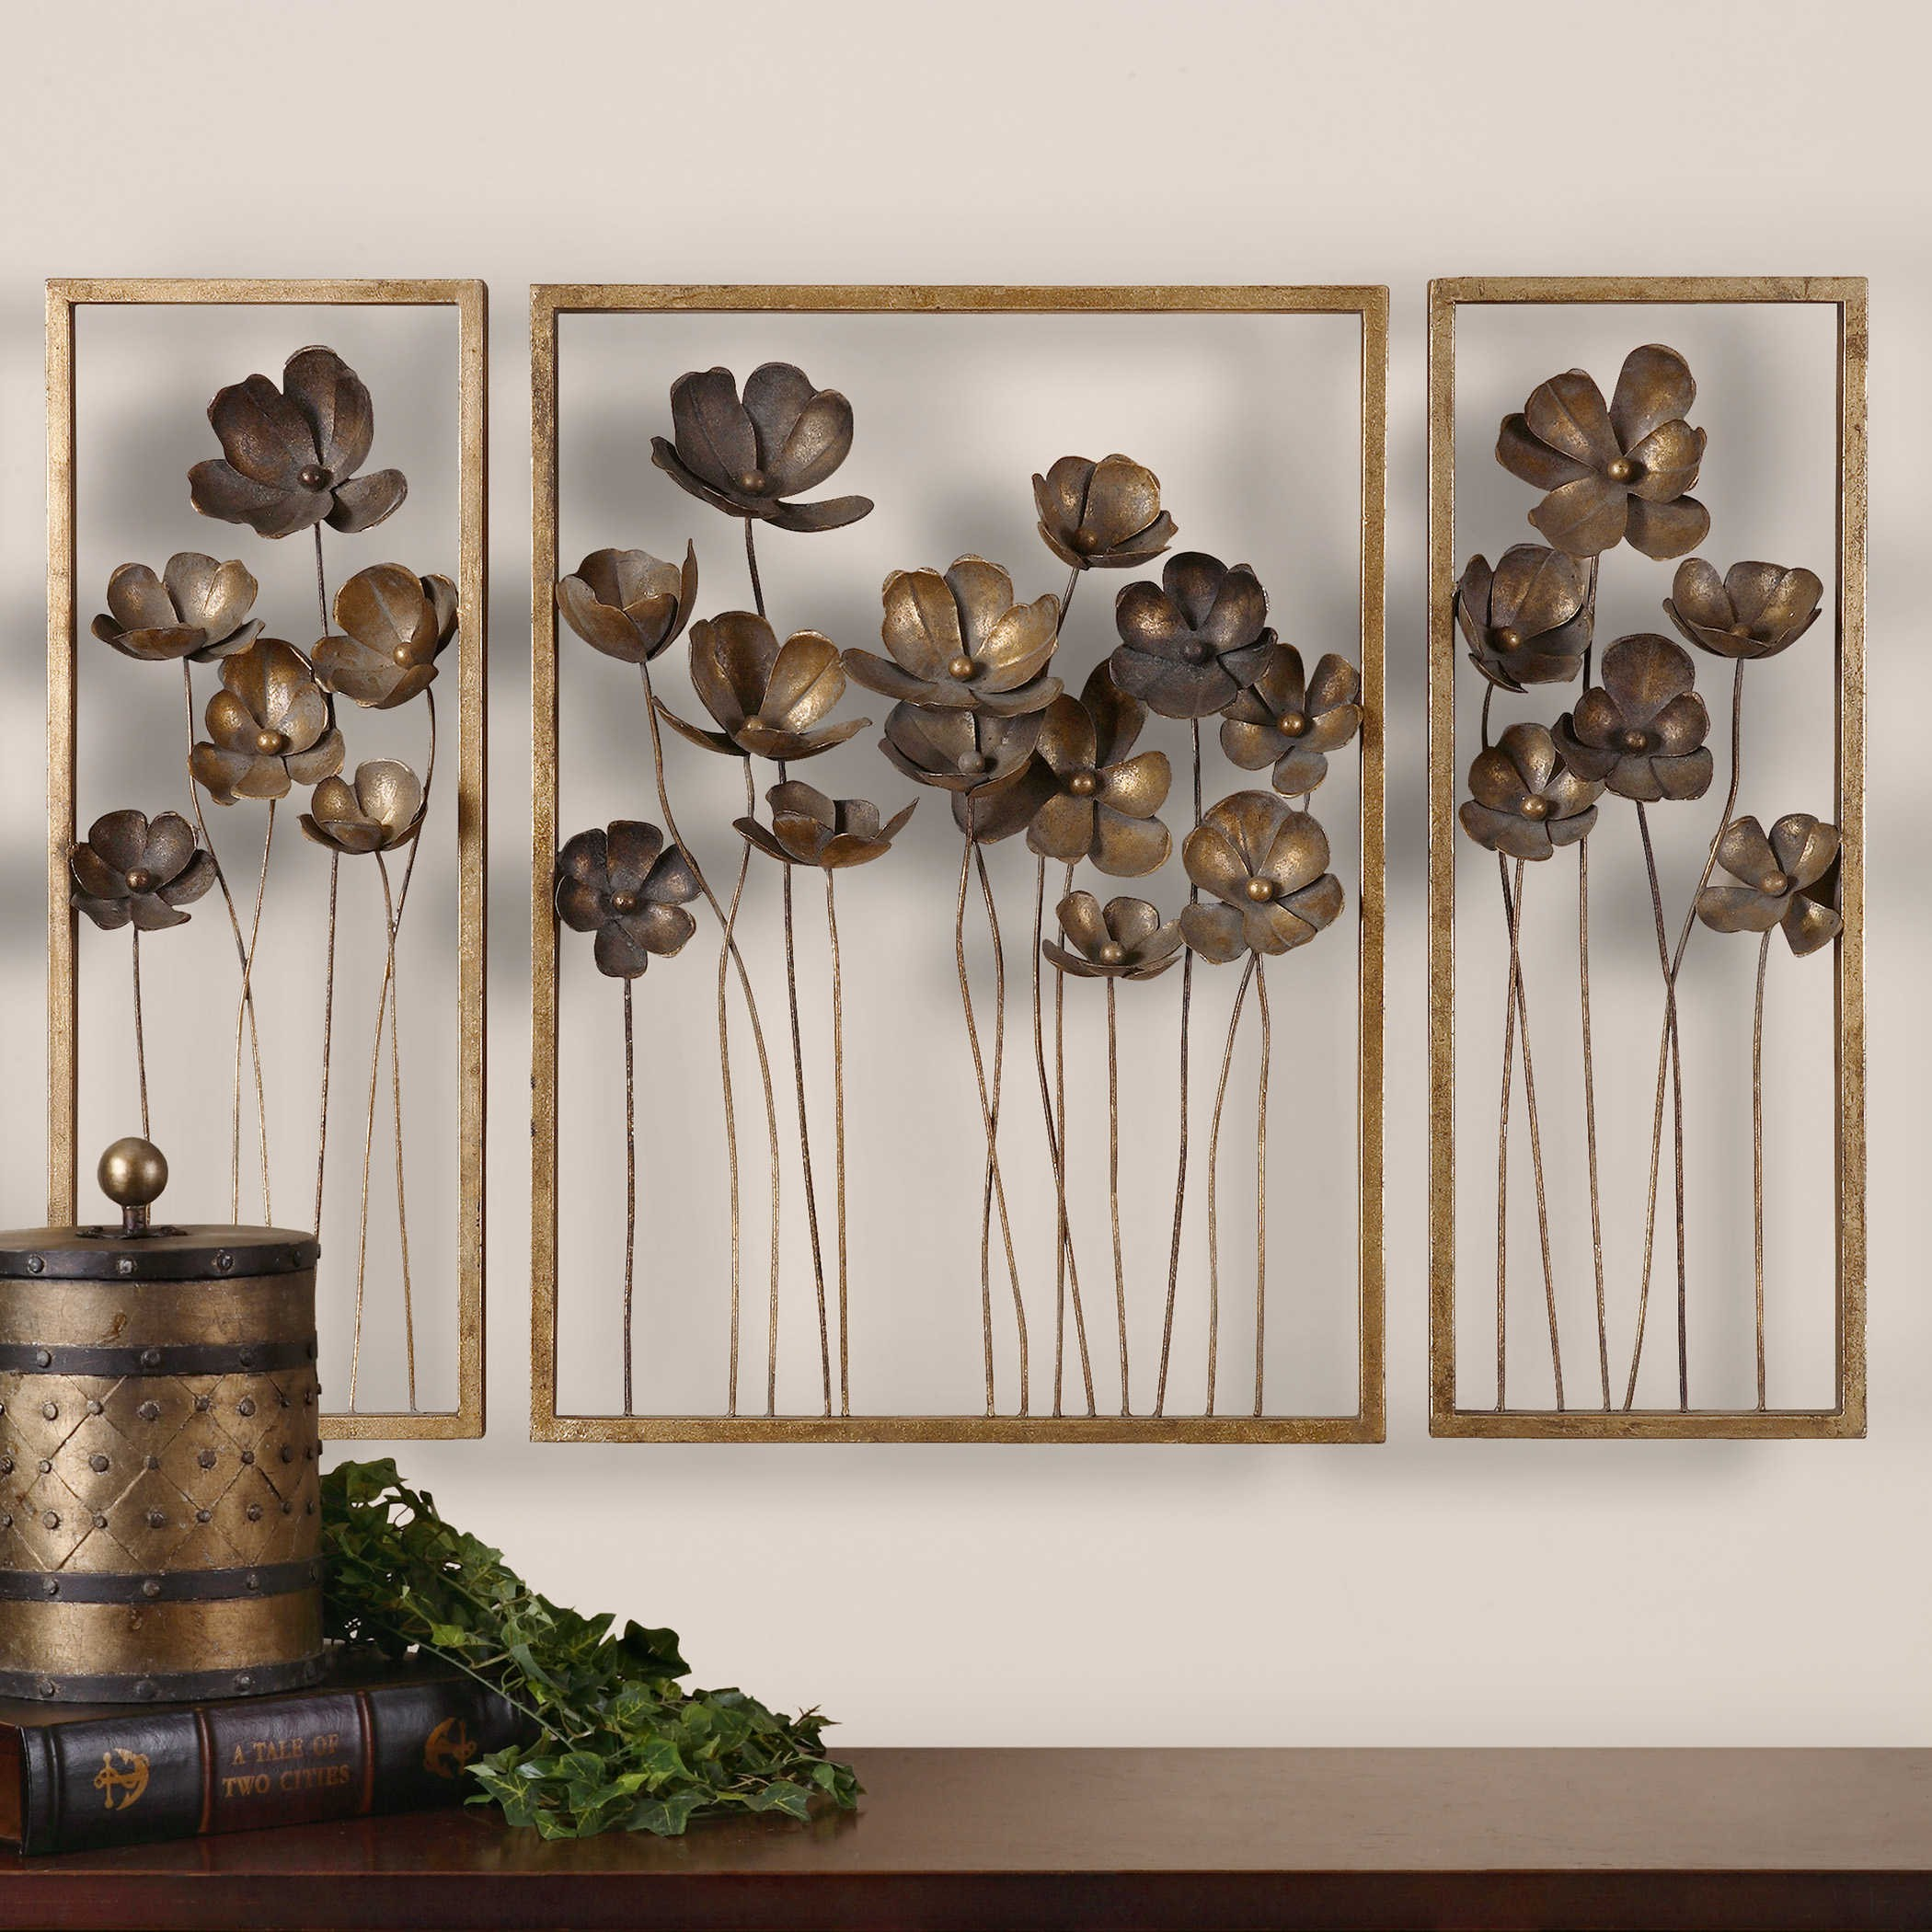 Metal leaf wall hanging 27 & Metal Leaf Wall Hanging - Foter